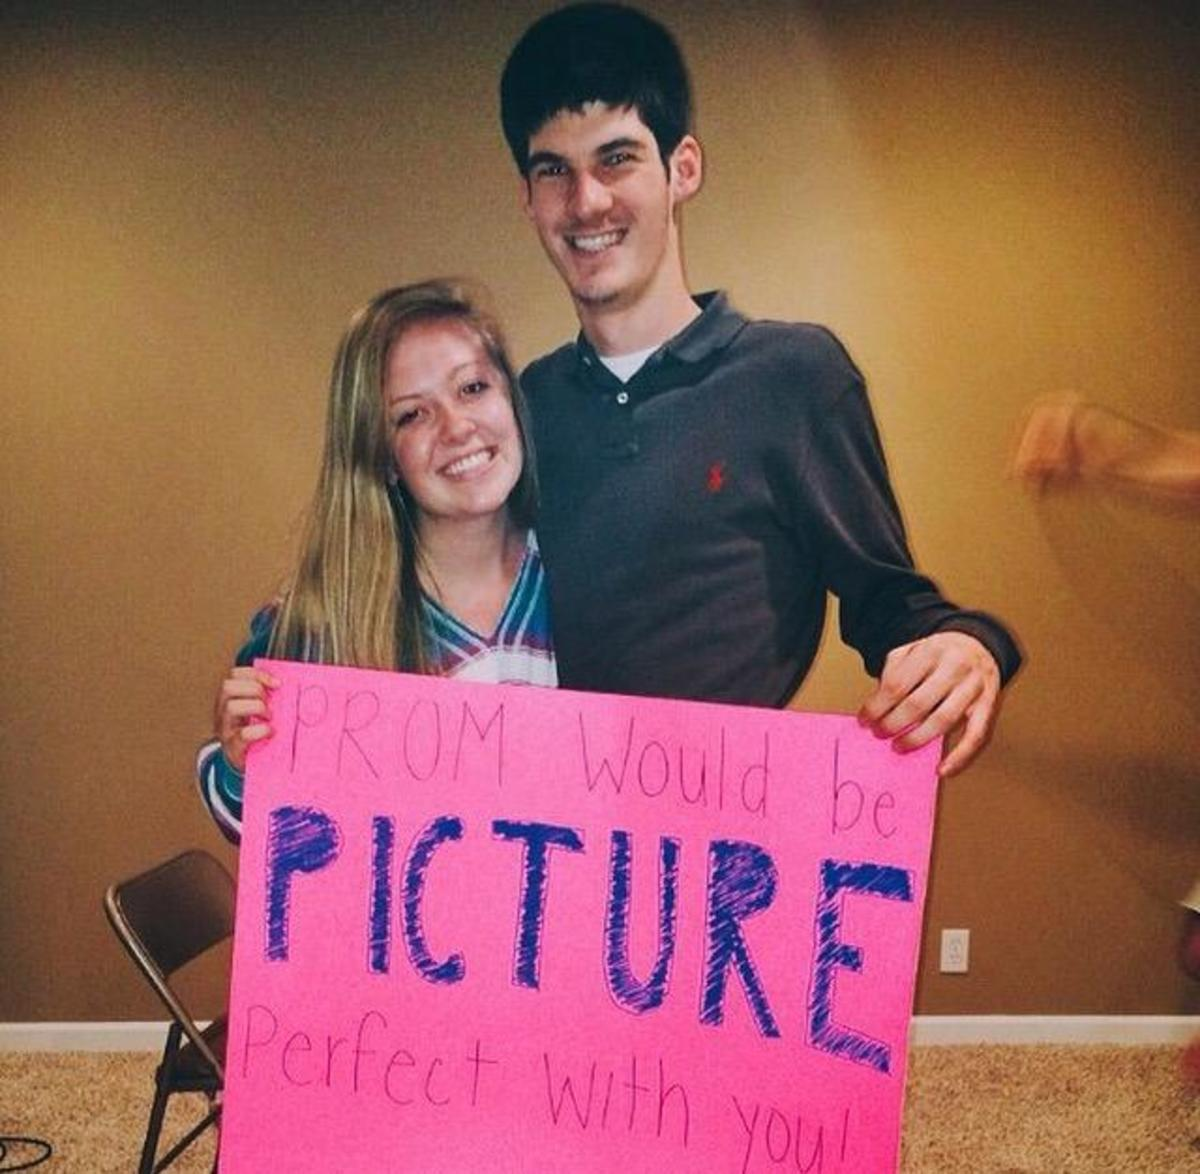 Promposals: A sweet tradition or an unfair expectation?